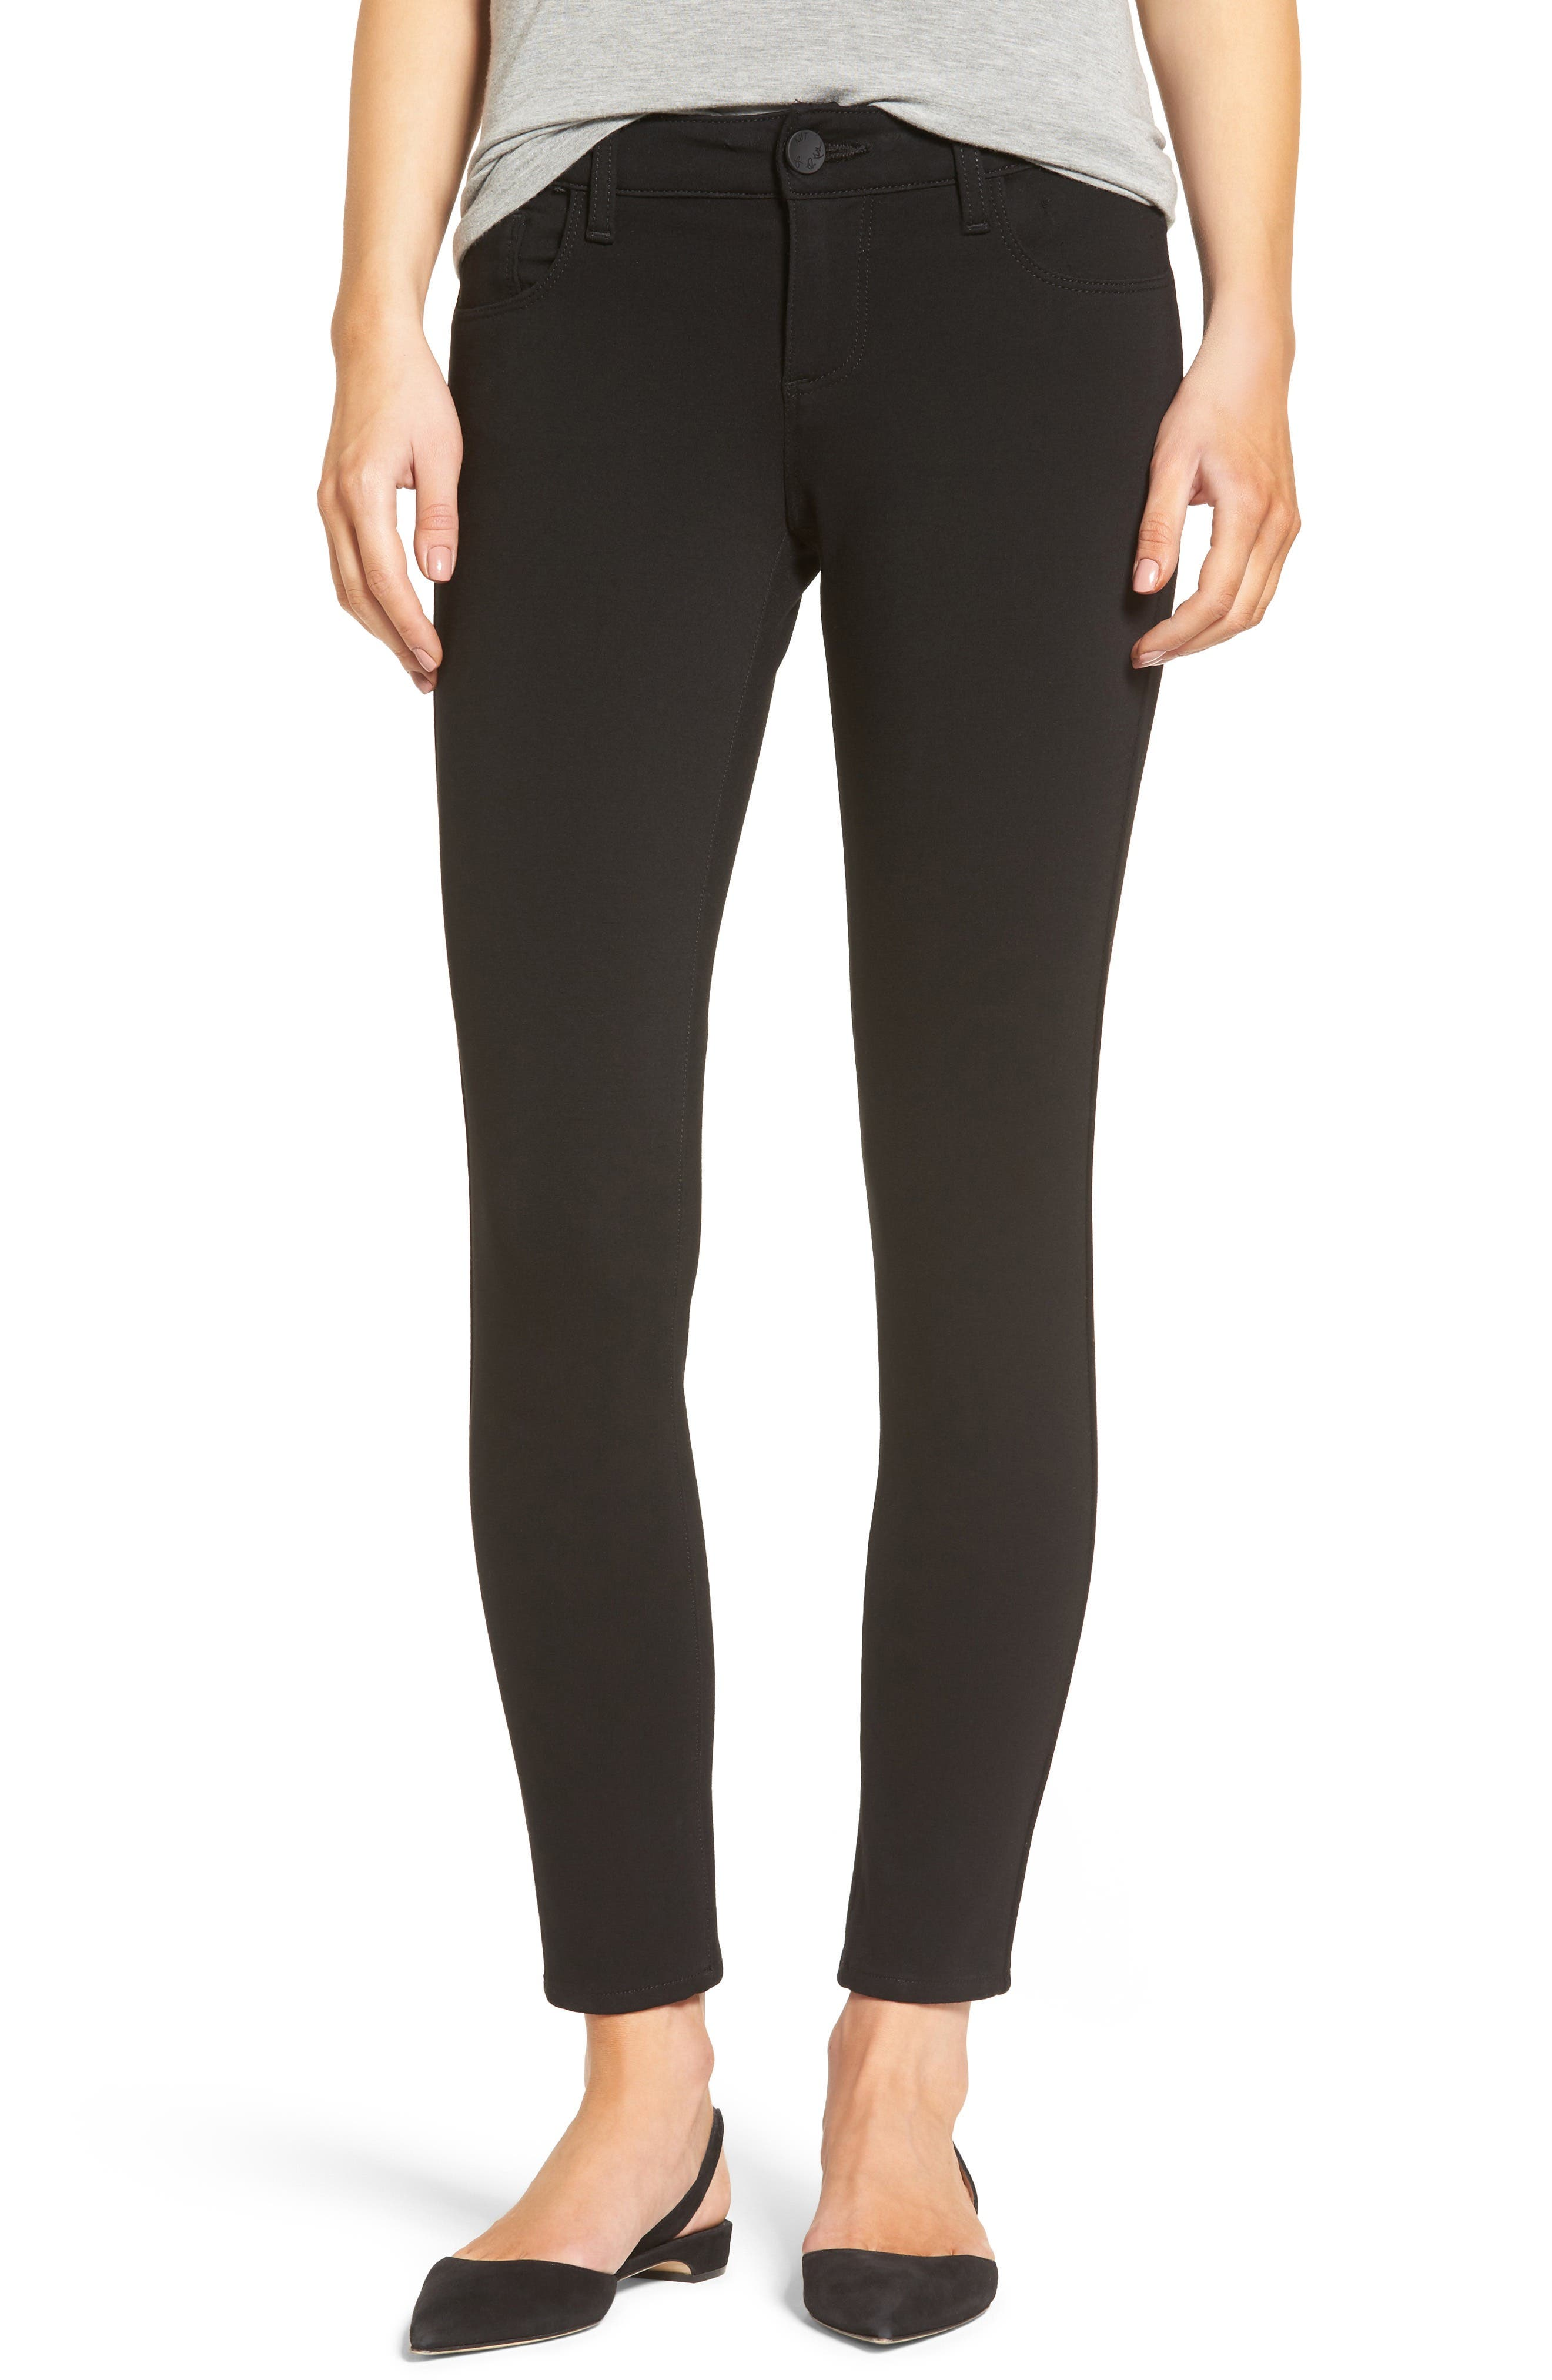 Alternate Image 1 Selected - KUT from the Kloth Donna Ponte Knit Skinny Jeans (Regular & Petite)